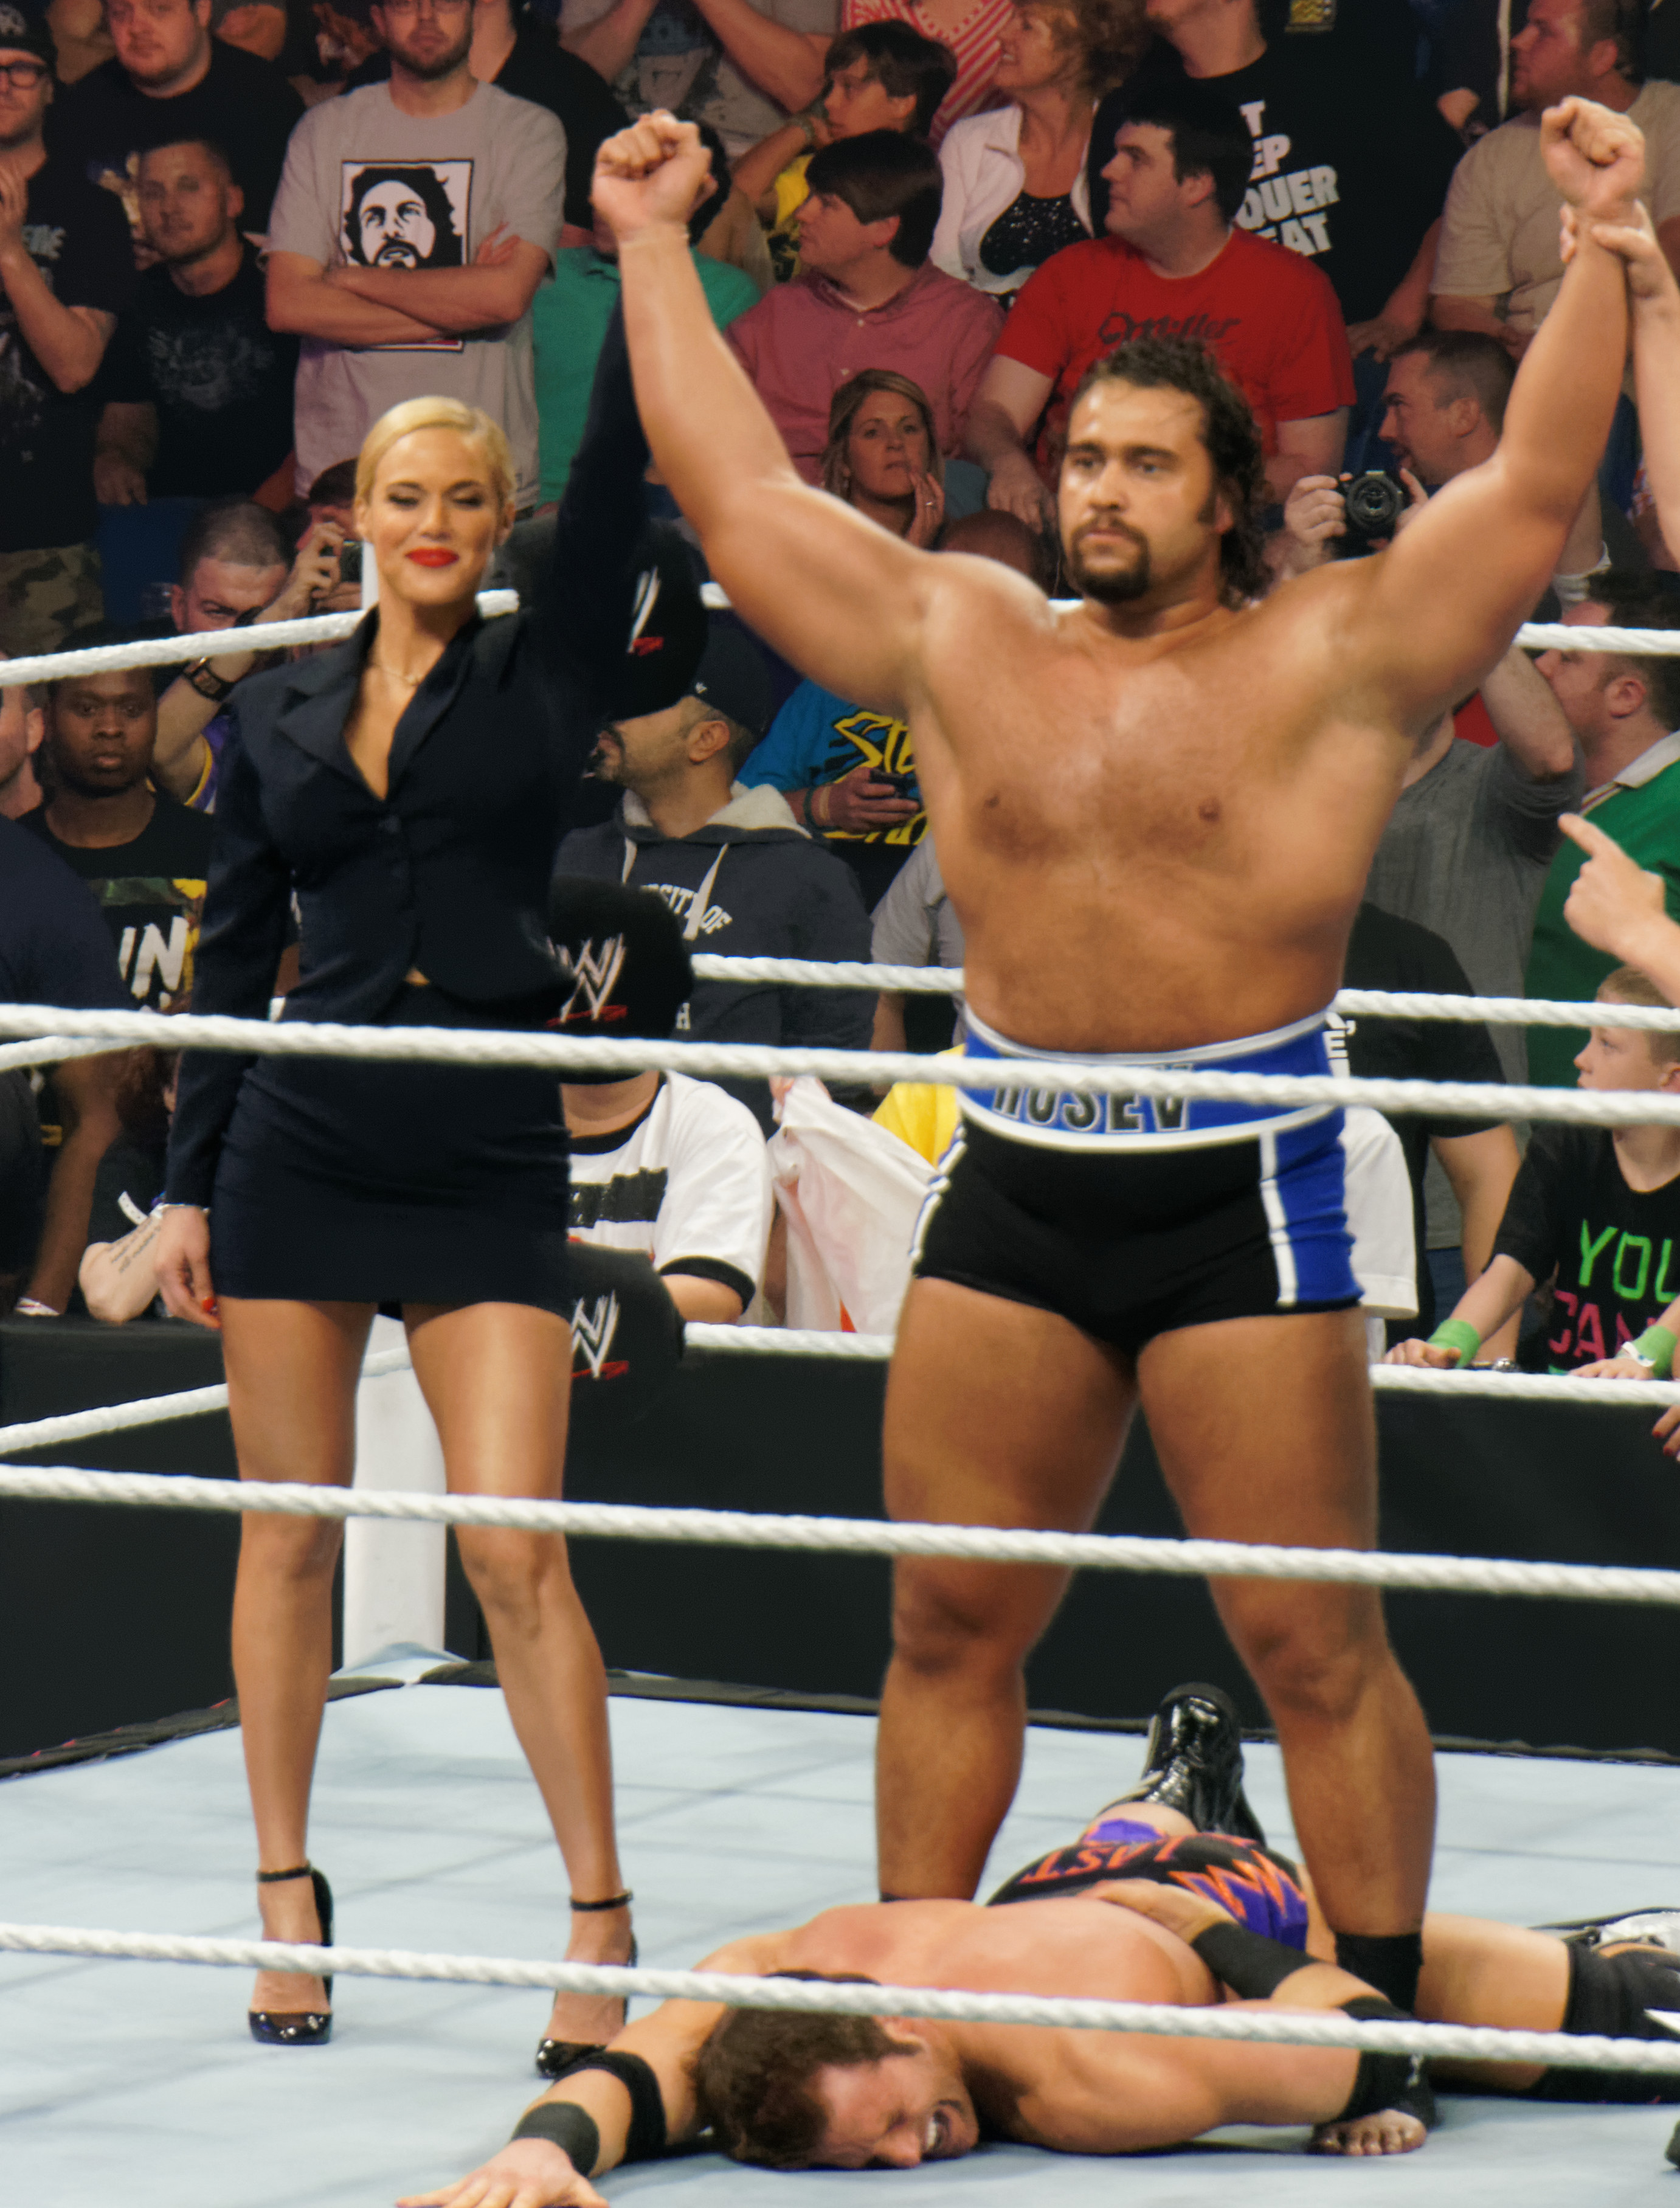 Lana (left) celebrating a win along Alexander Rusev at a Raw event in April 2014